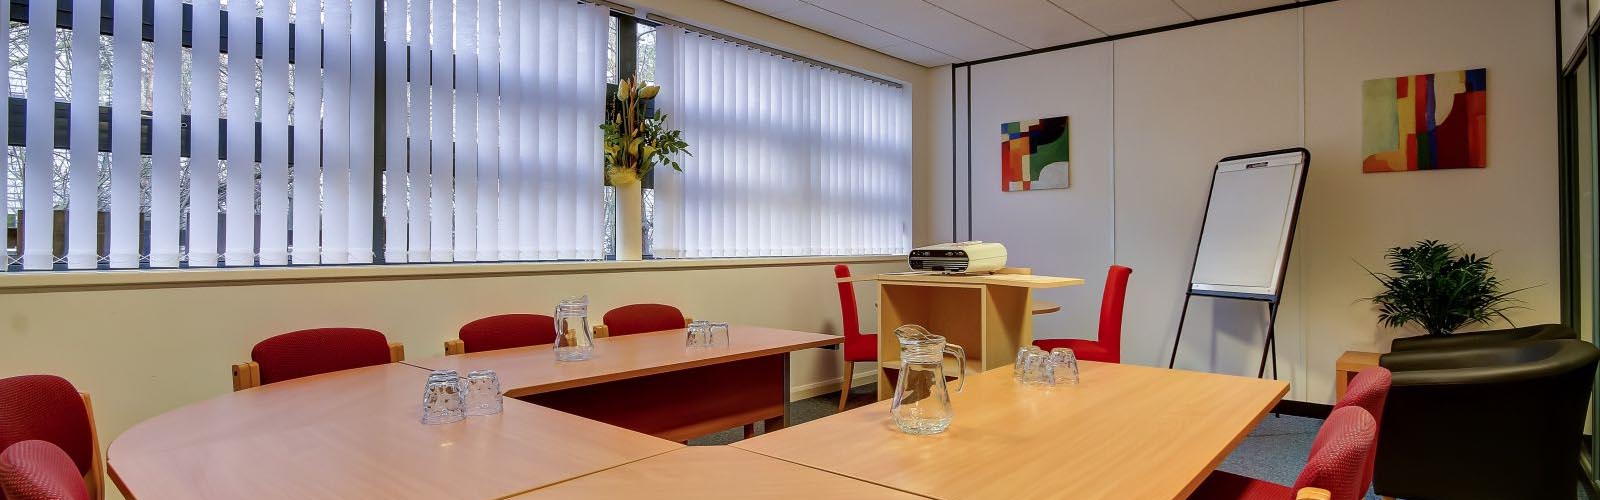 Seminar and training room hire in Durham, UK